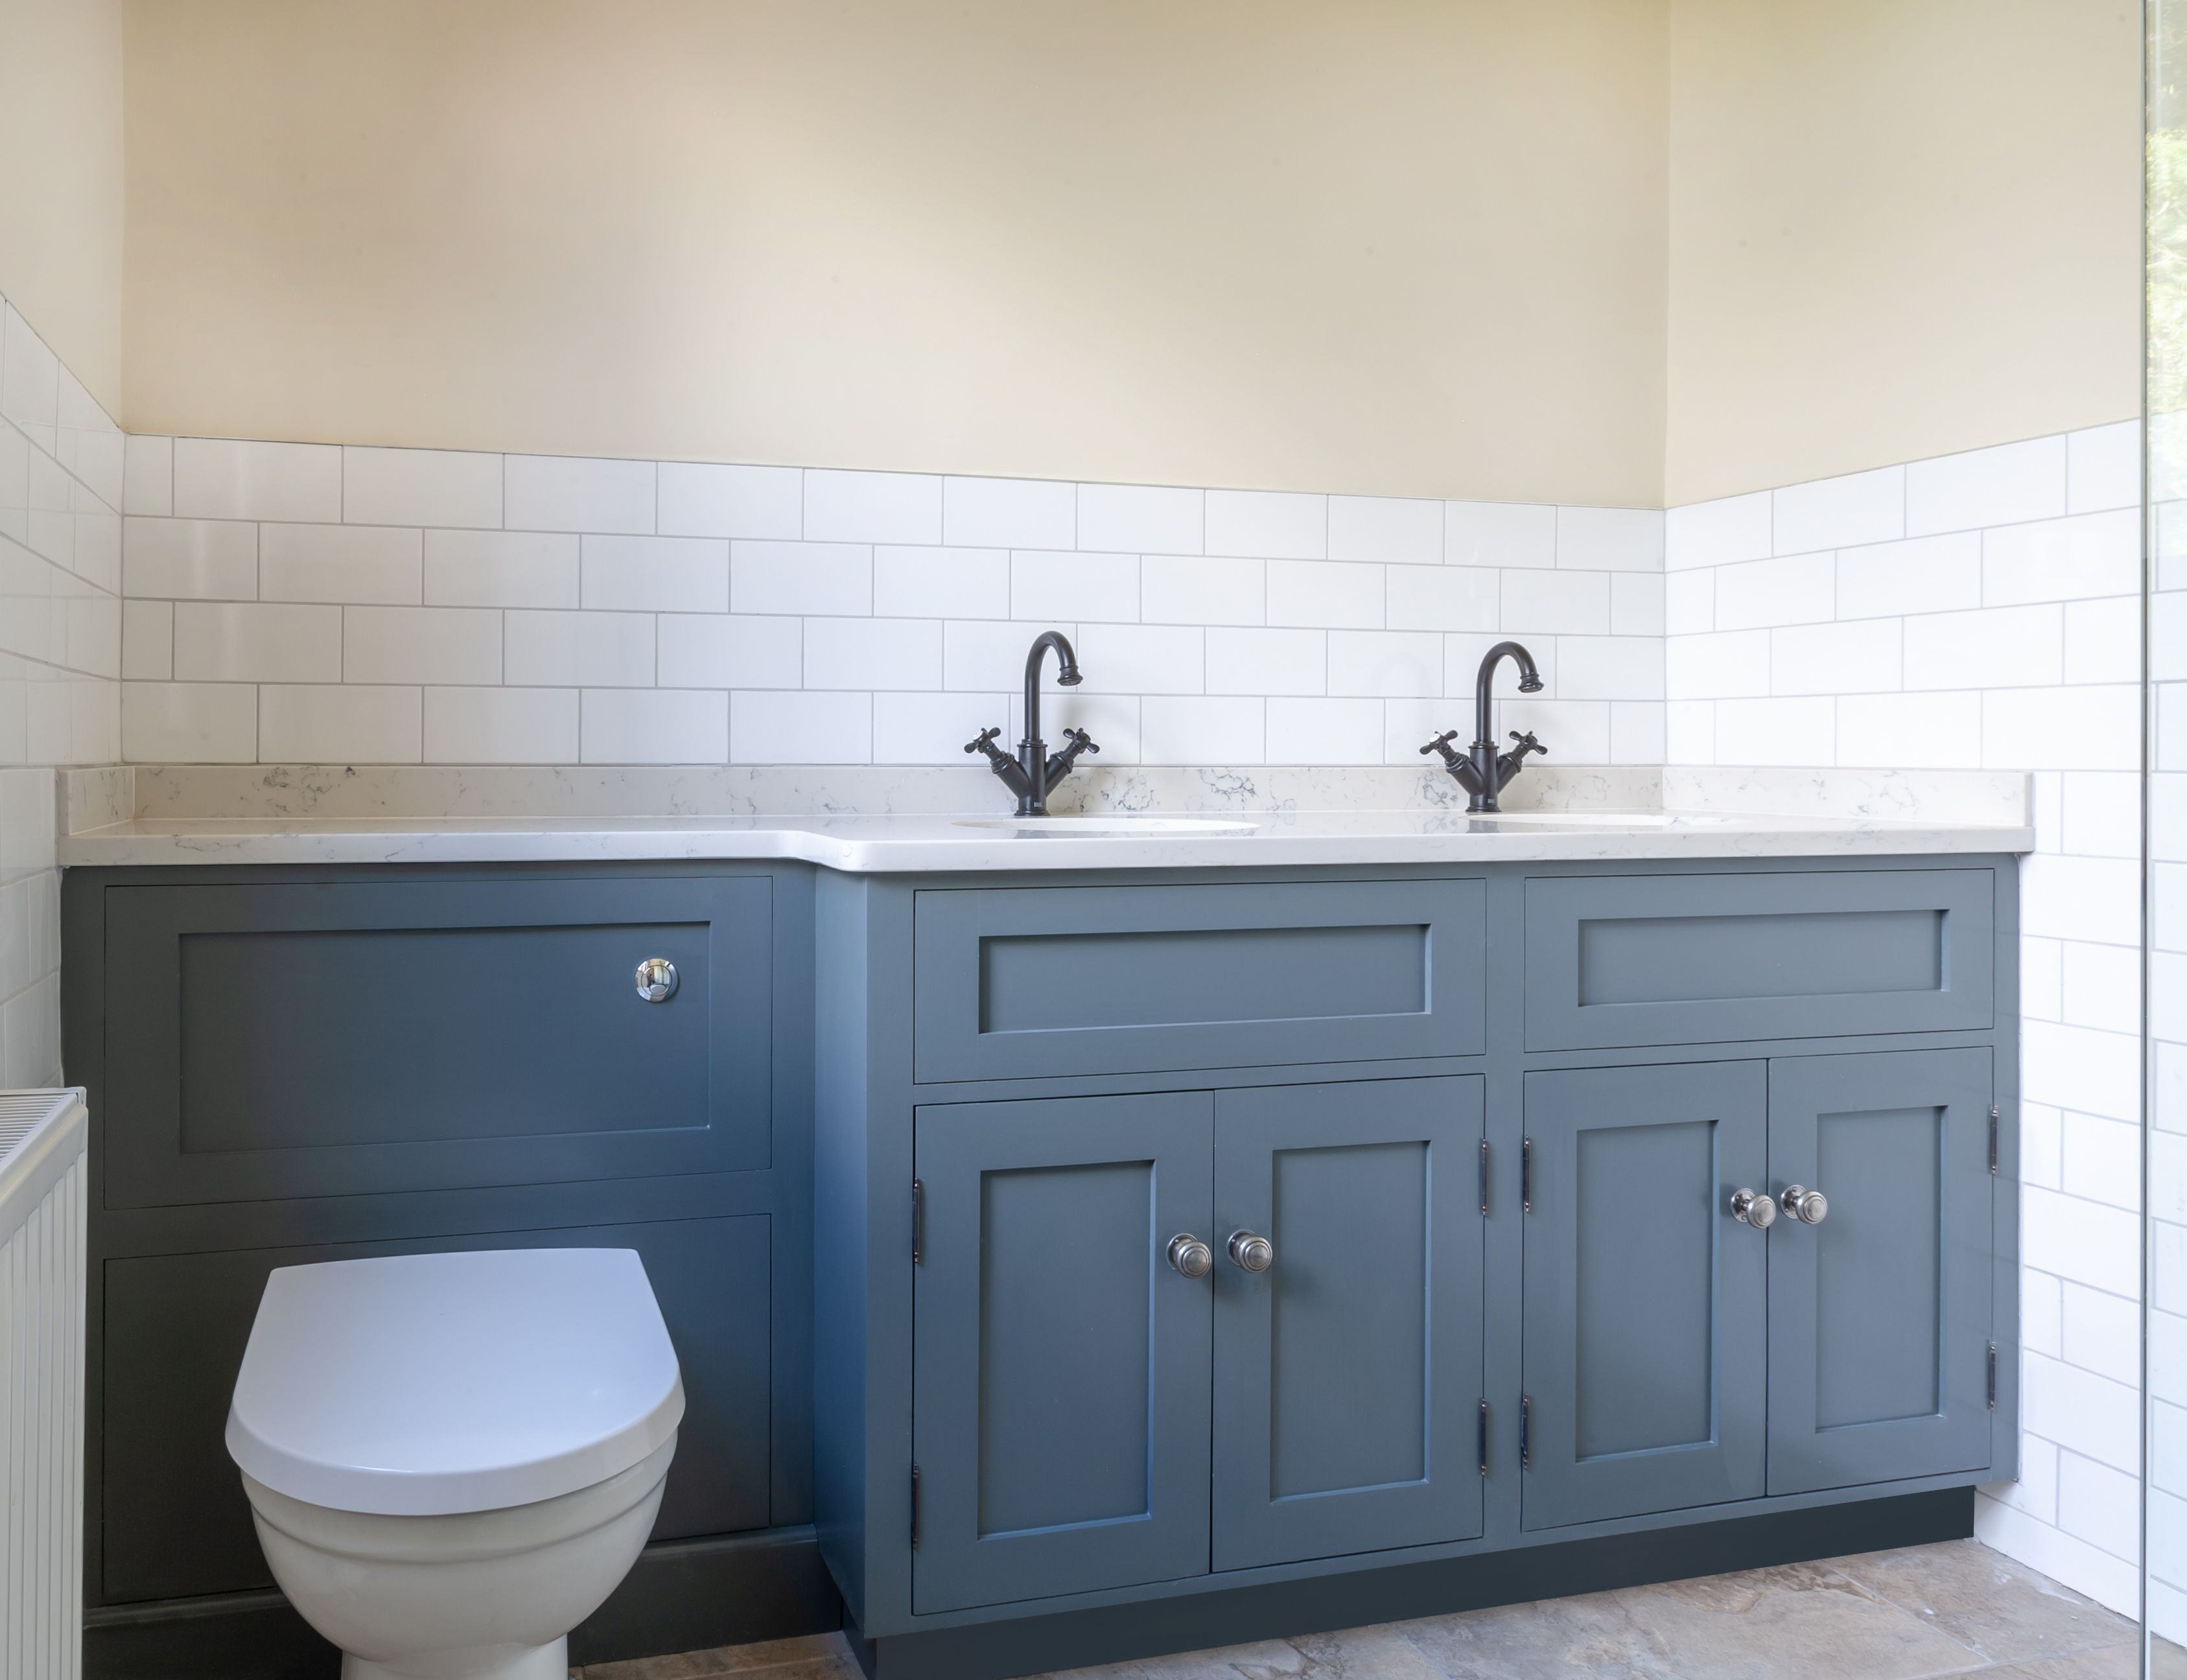 Bespoke Vanity Unit Featuring Back To Wall Toilet And Double Sinks